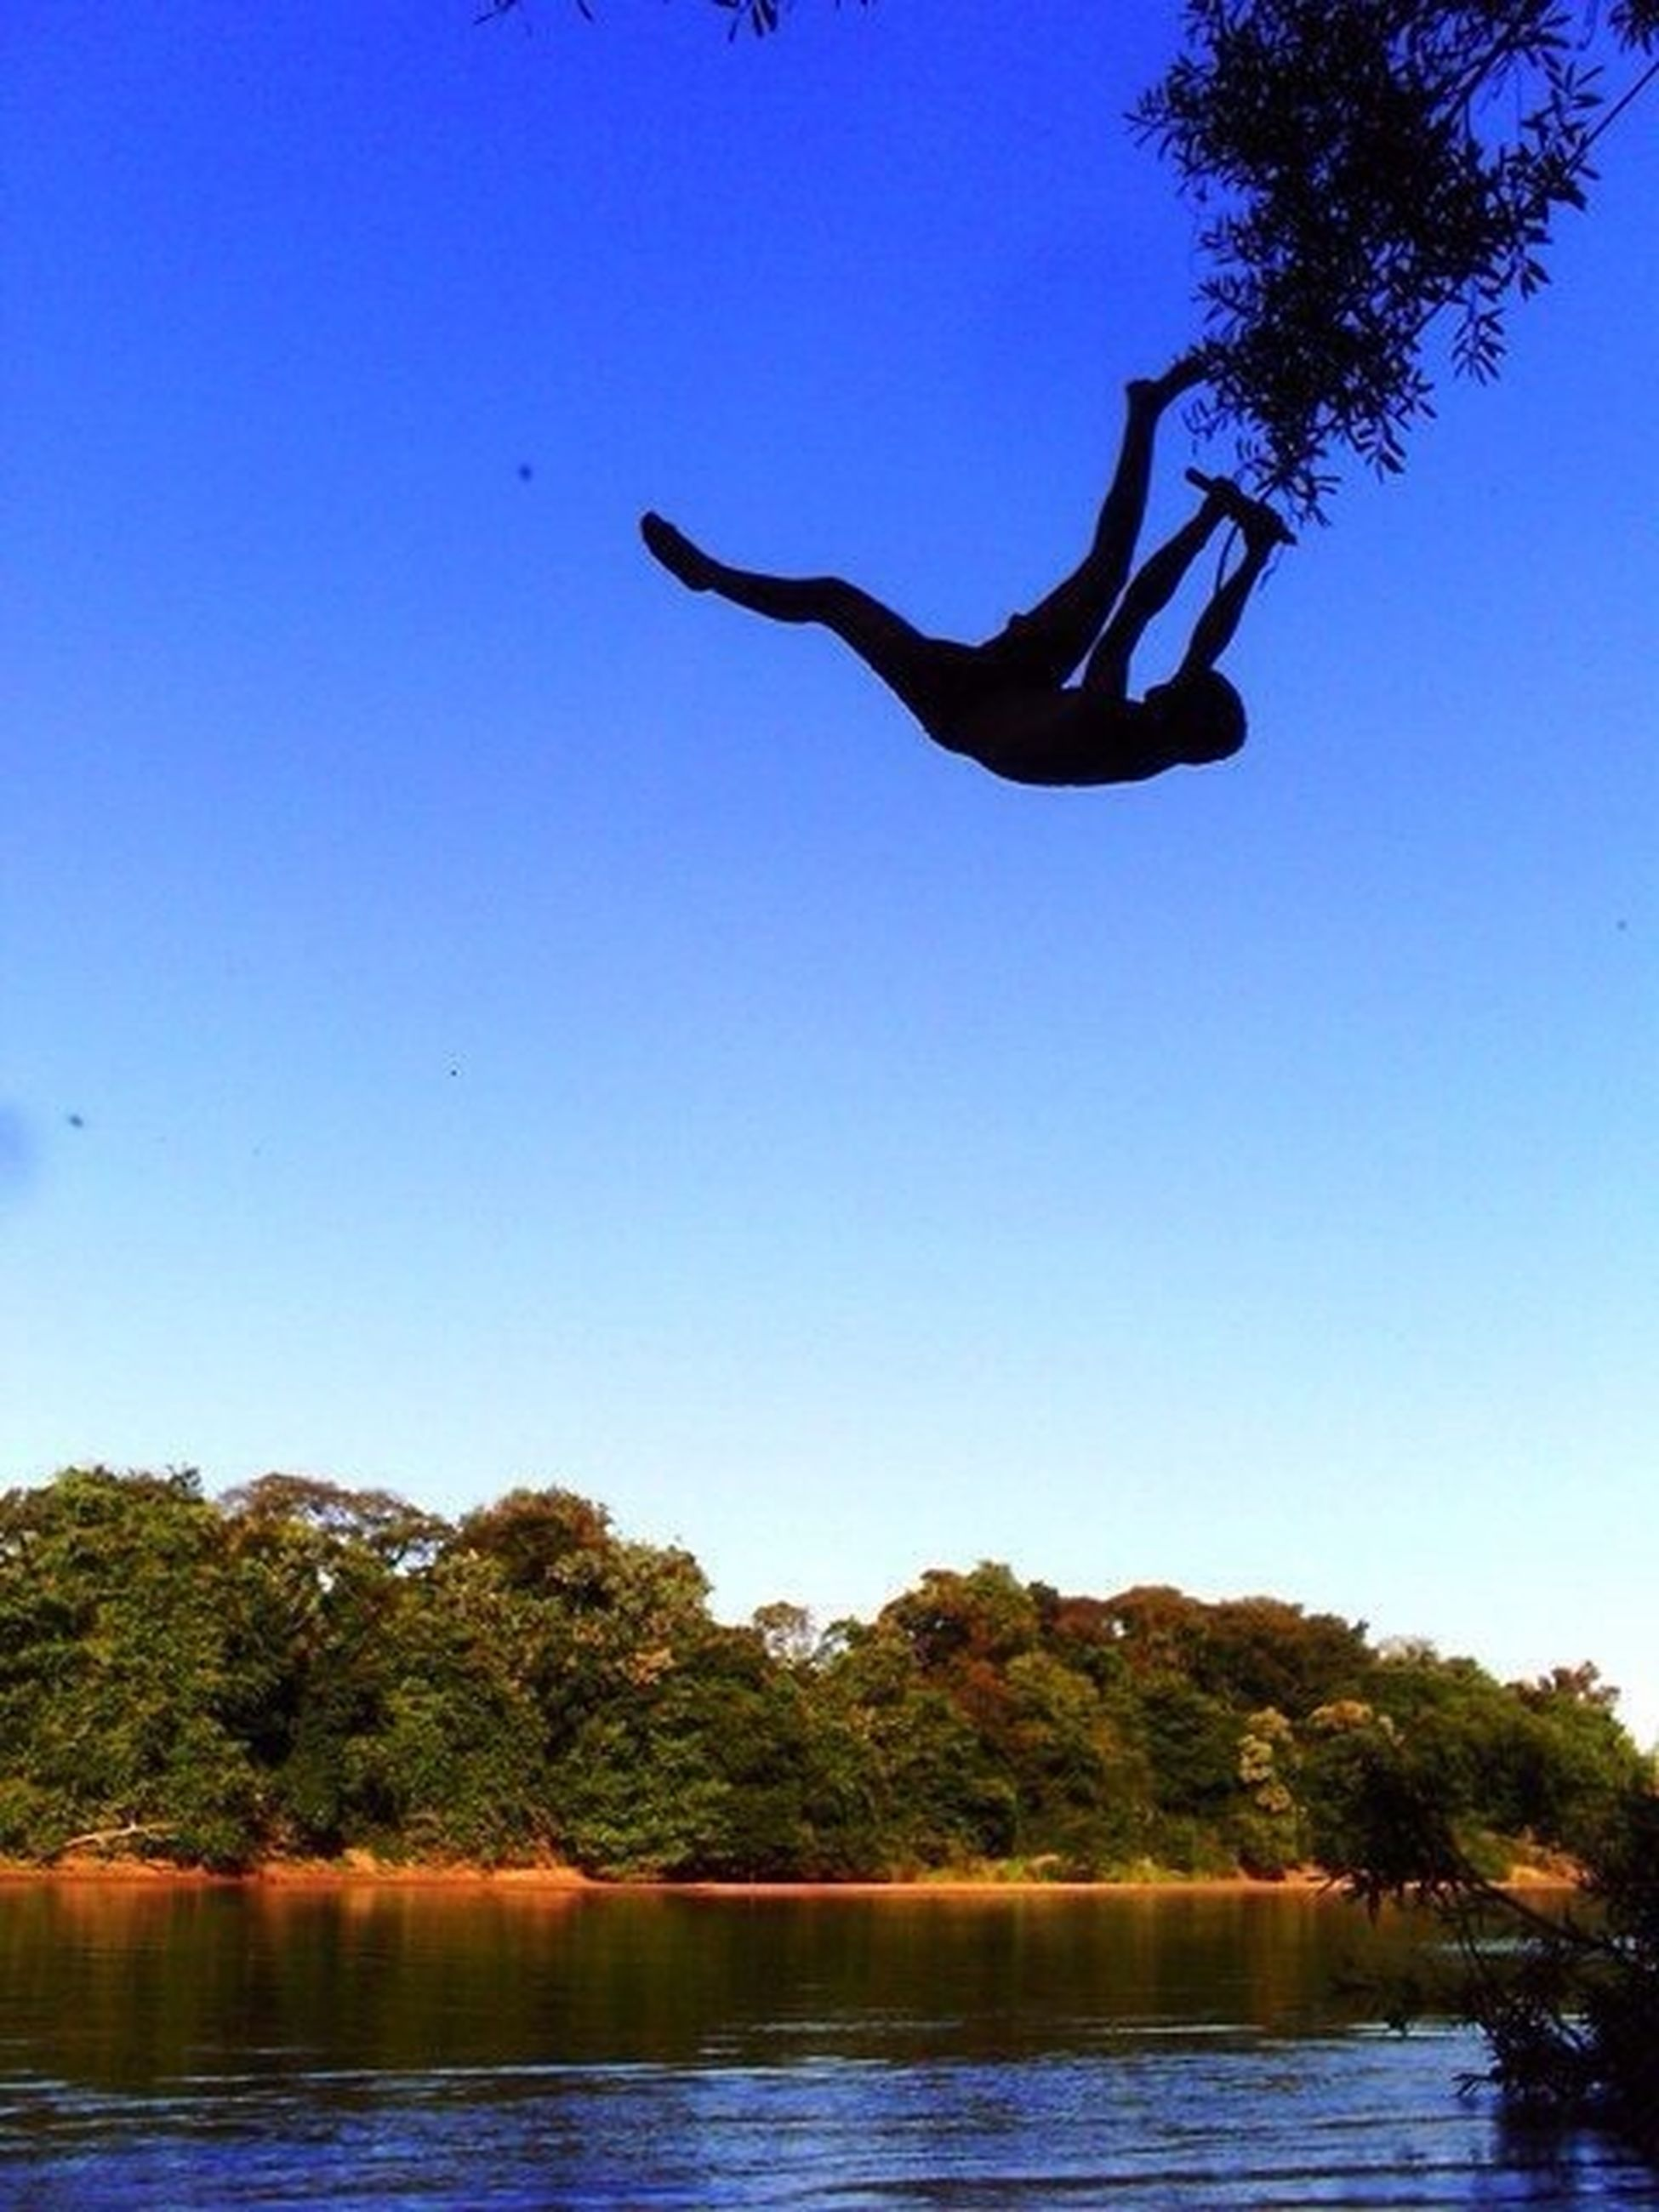 leisure activity, water, tree, blue, lifestyles, clear sky, mid-air, jumping, enjoyment, men, fun, waterfront, full length, adventure, freedom, extreme sports, vacations, low angle view